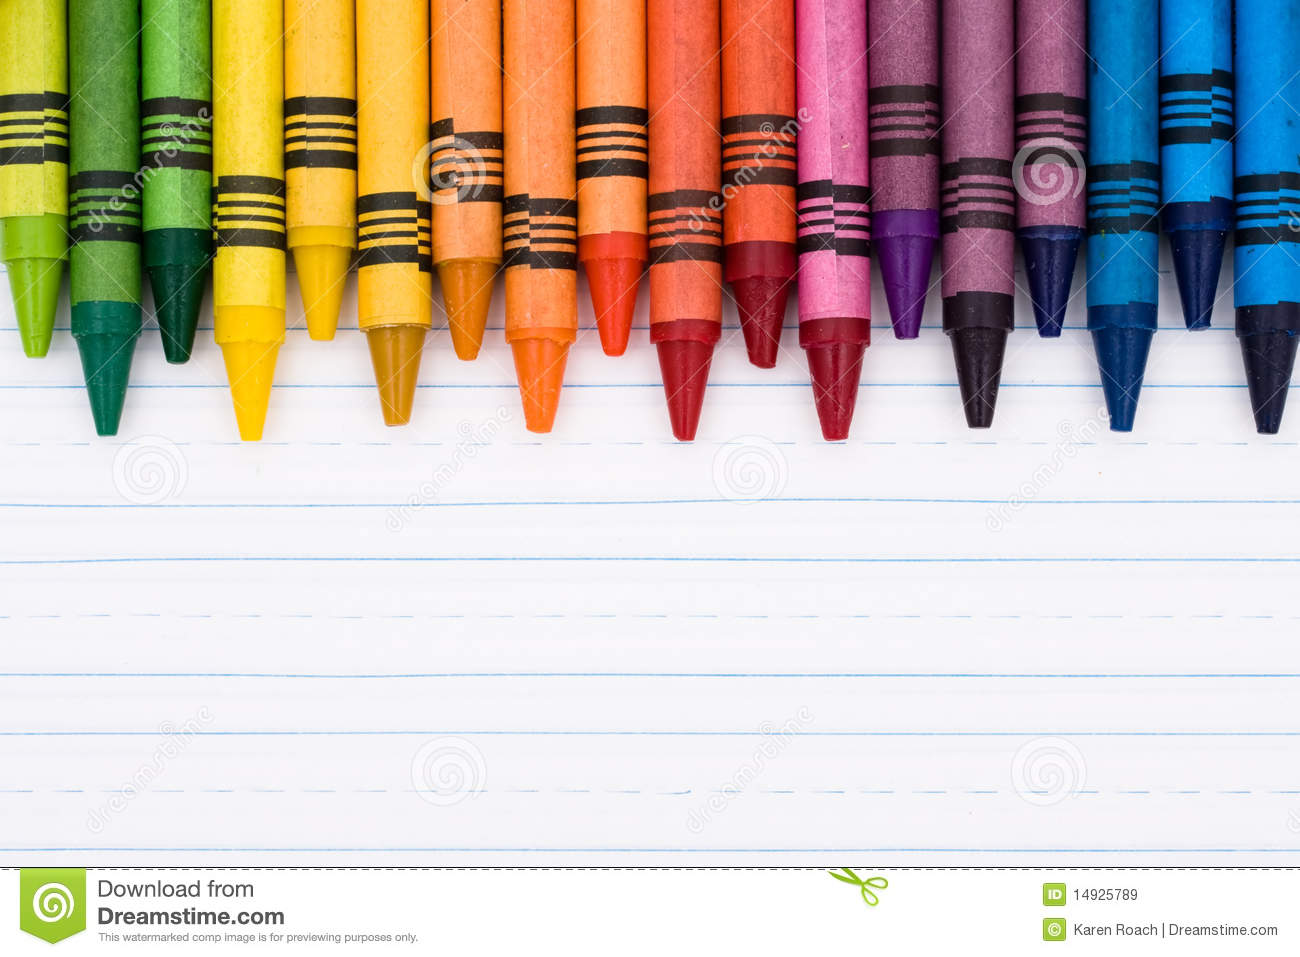 Colorful crayons on a sheet of lined paper, Education background.